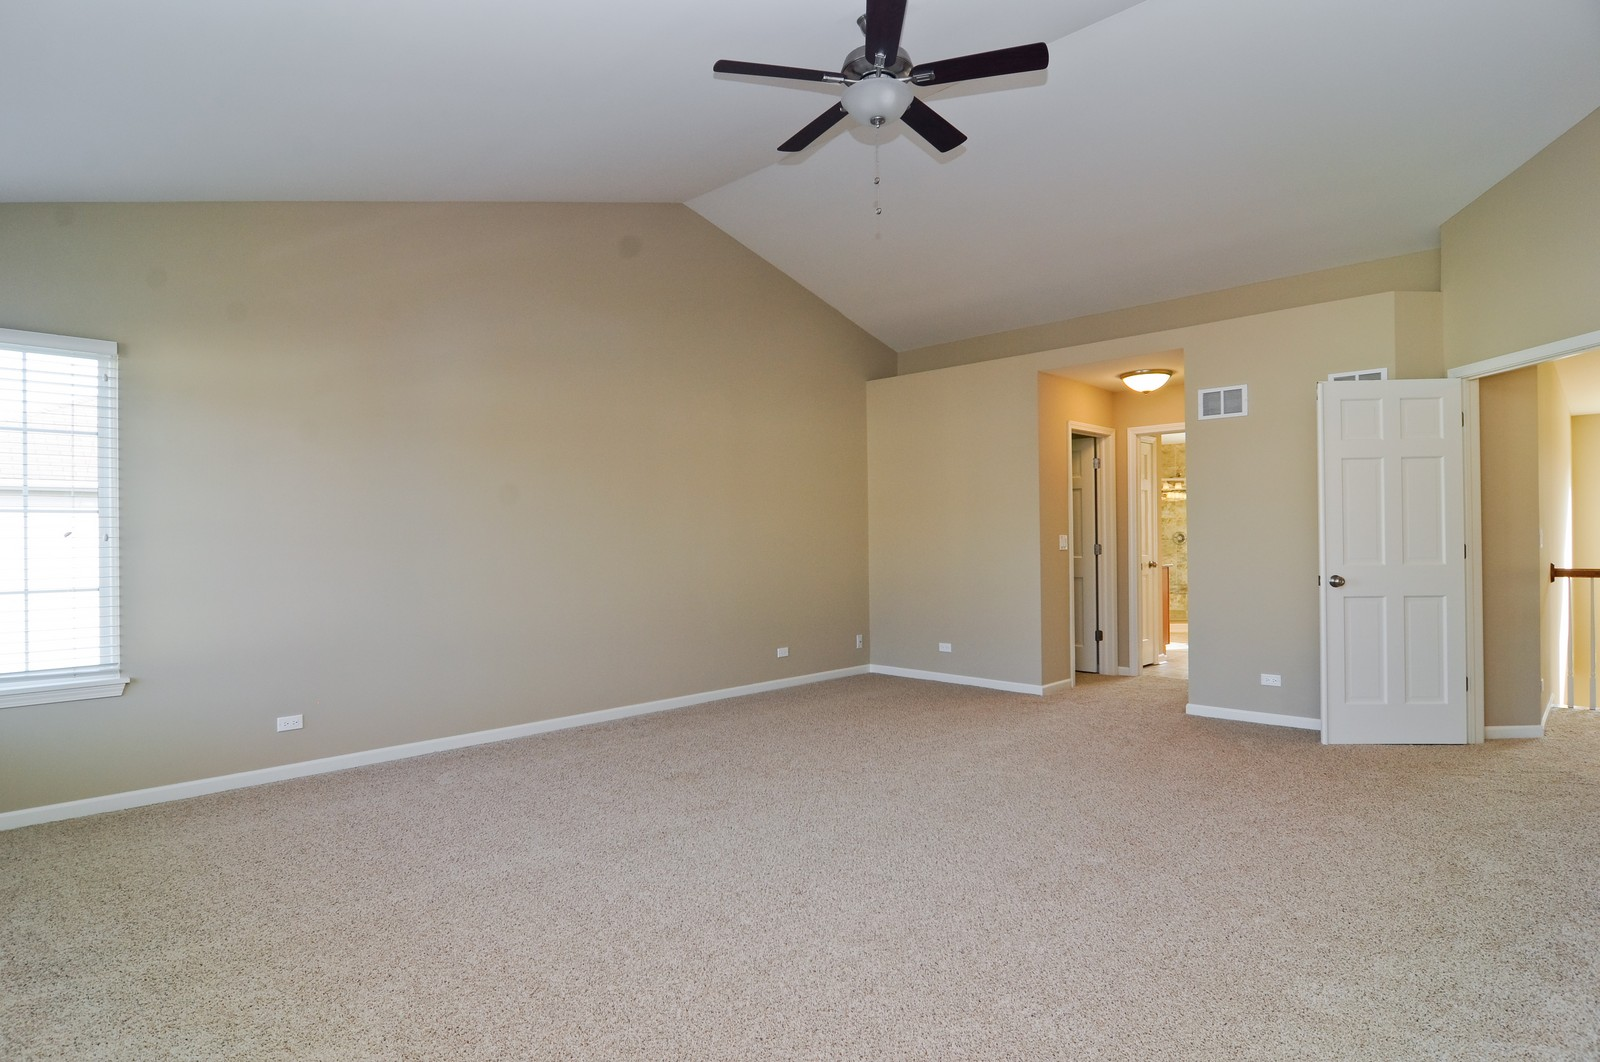 Real Estate Photography - 7394 Brentwood, Gurnee, IL, 60031 - Master Bedroom